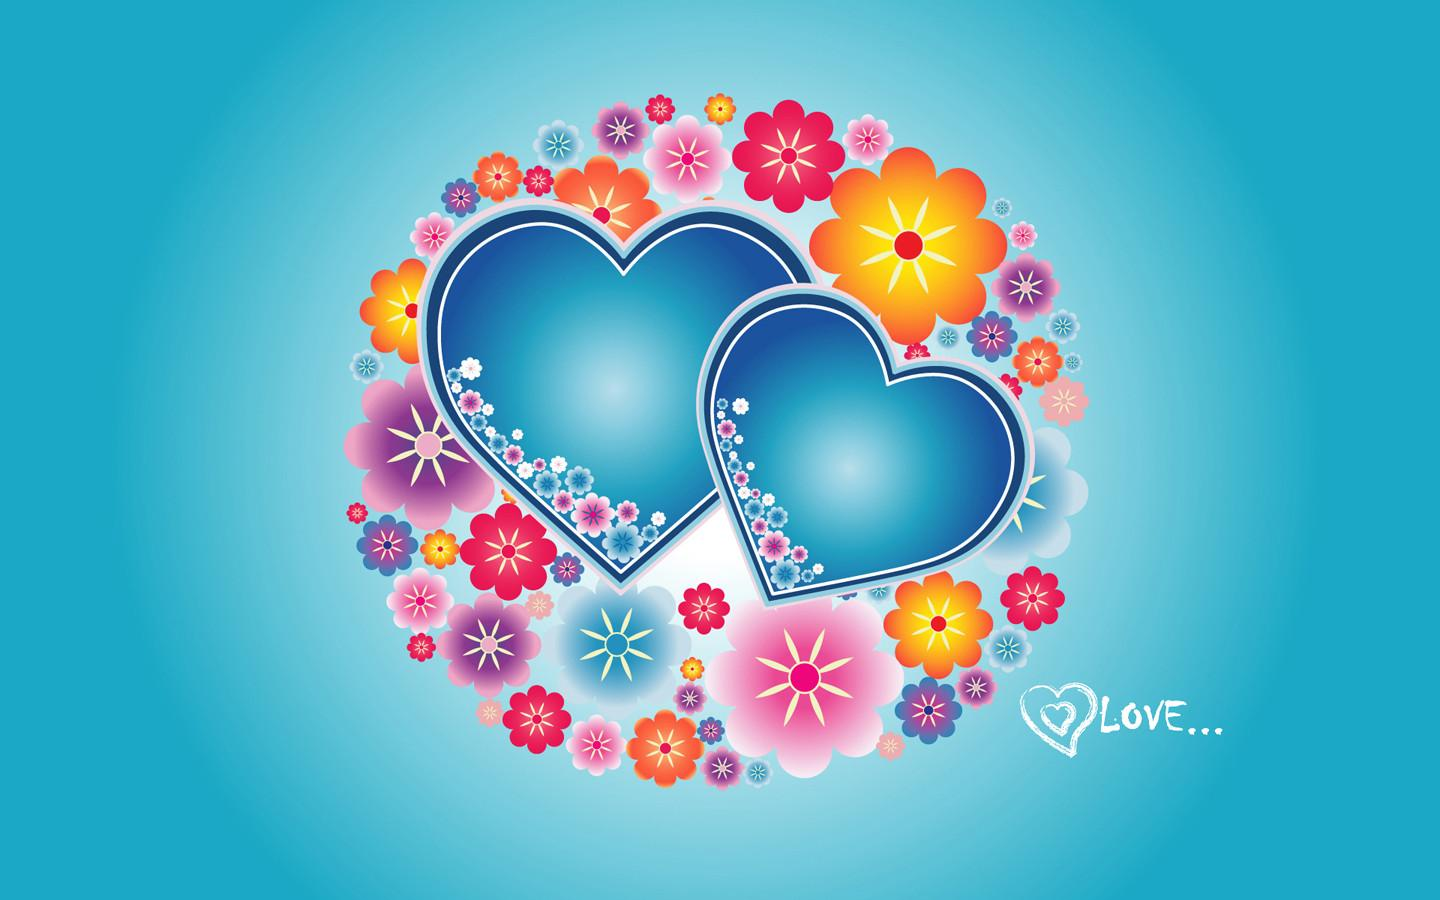 Wallpapers Of Hearts In Love